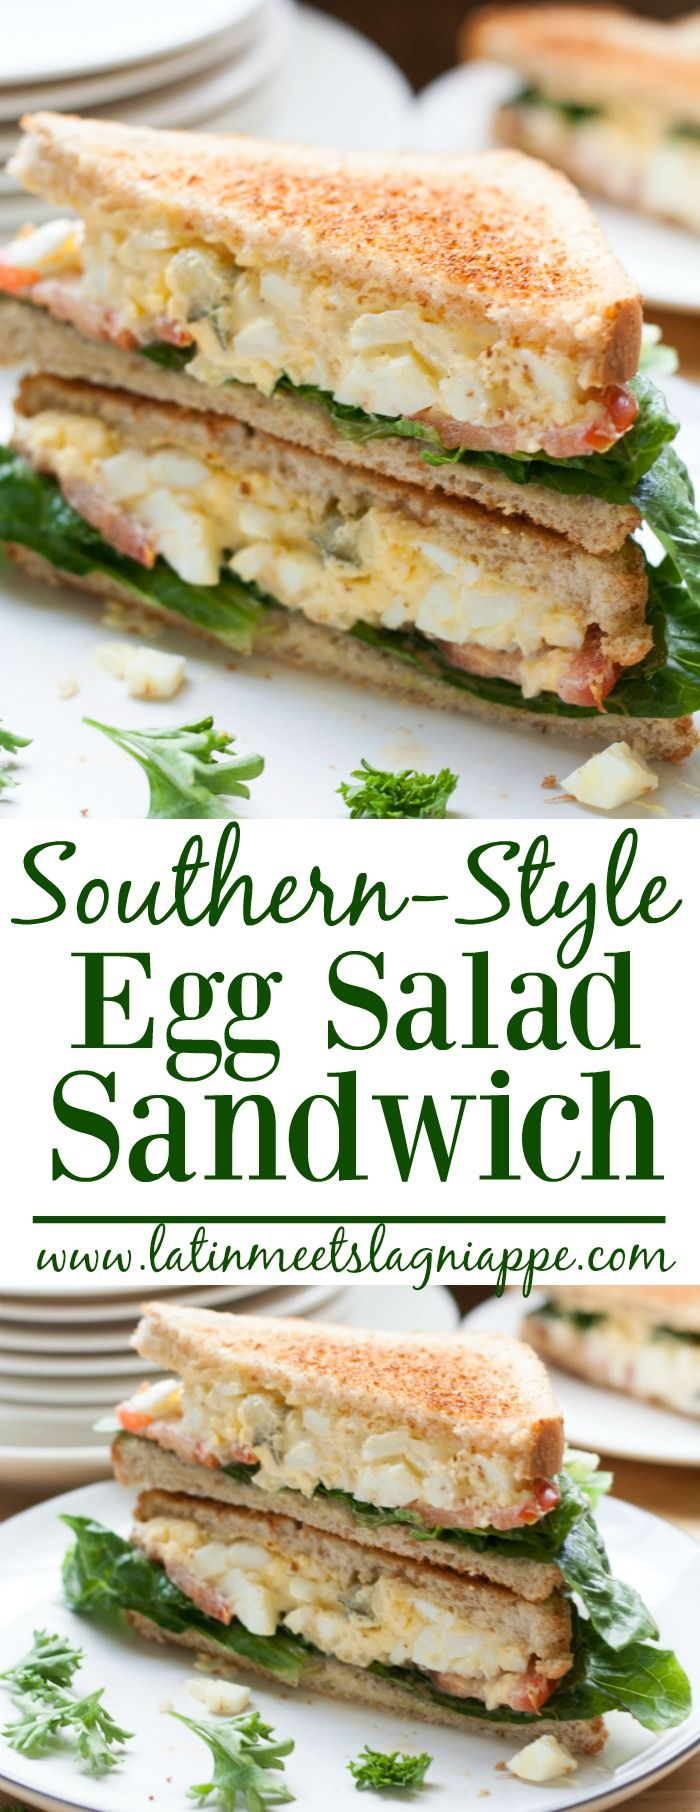 This tasty Southern-Style Egg Salad Sandwich is a perfect lunch!